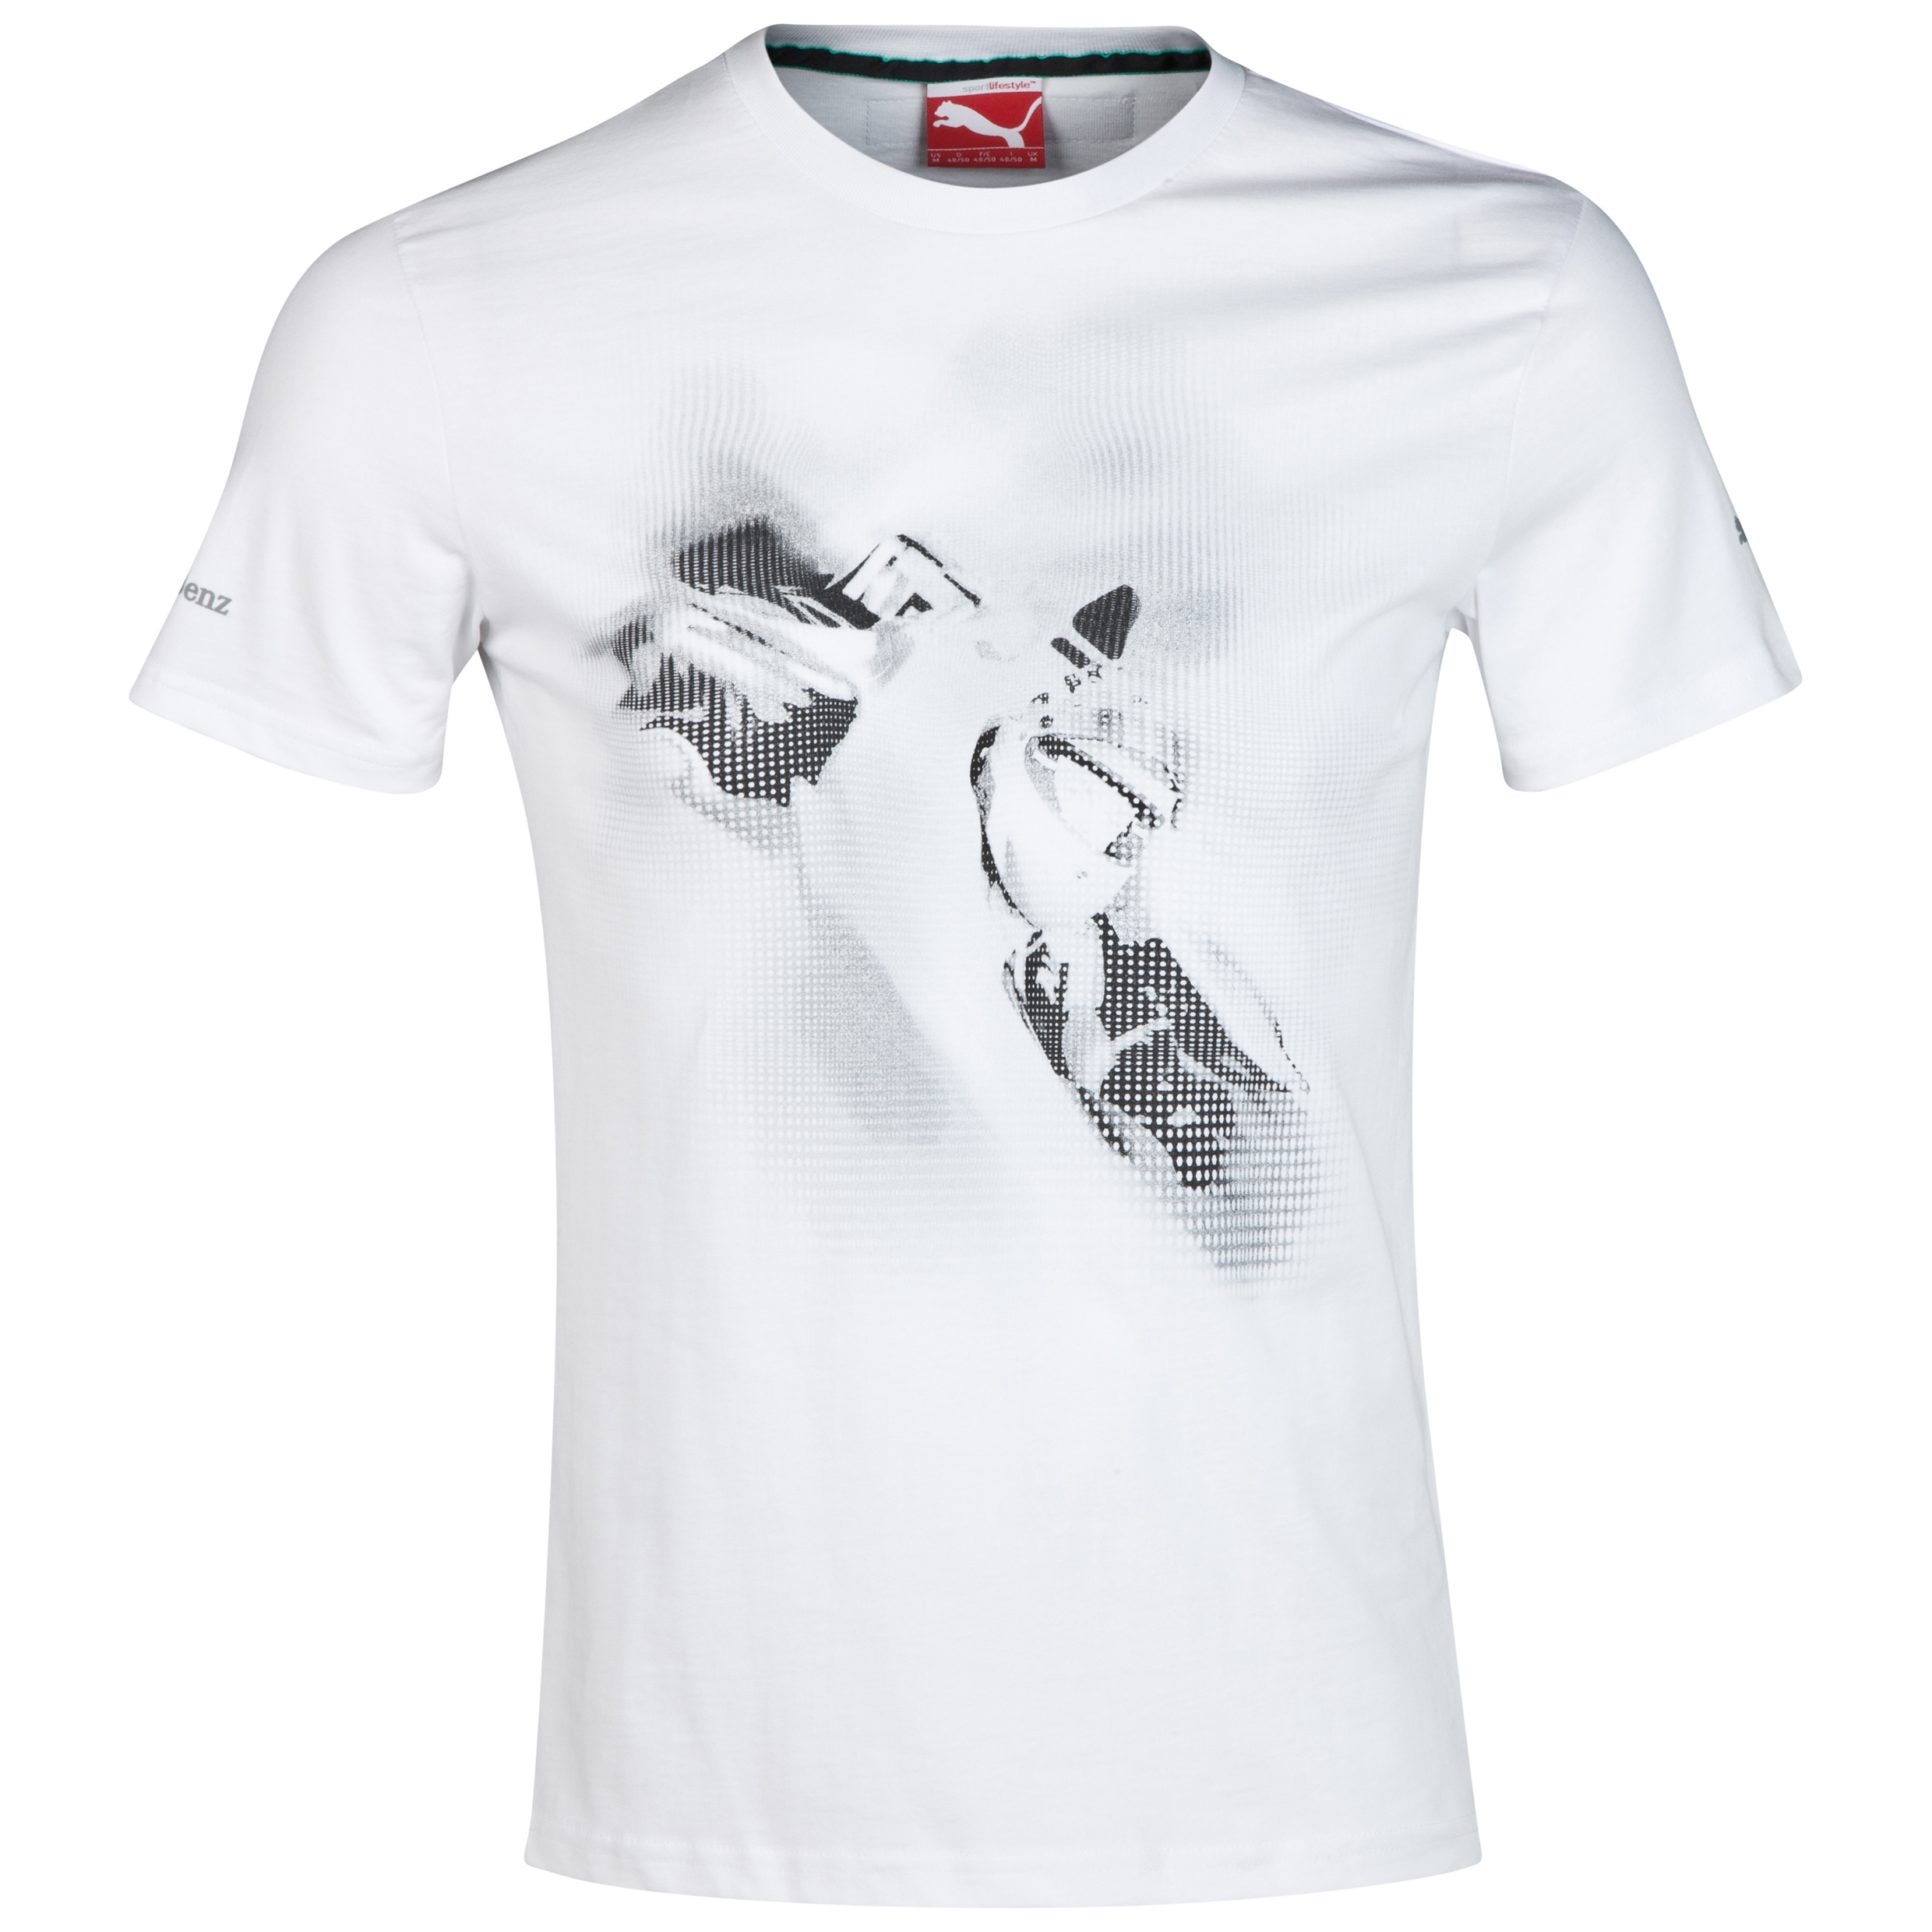 Mercedes AMG PETRONAS Graphic T-Shirt White